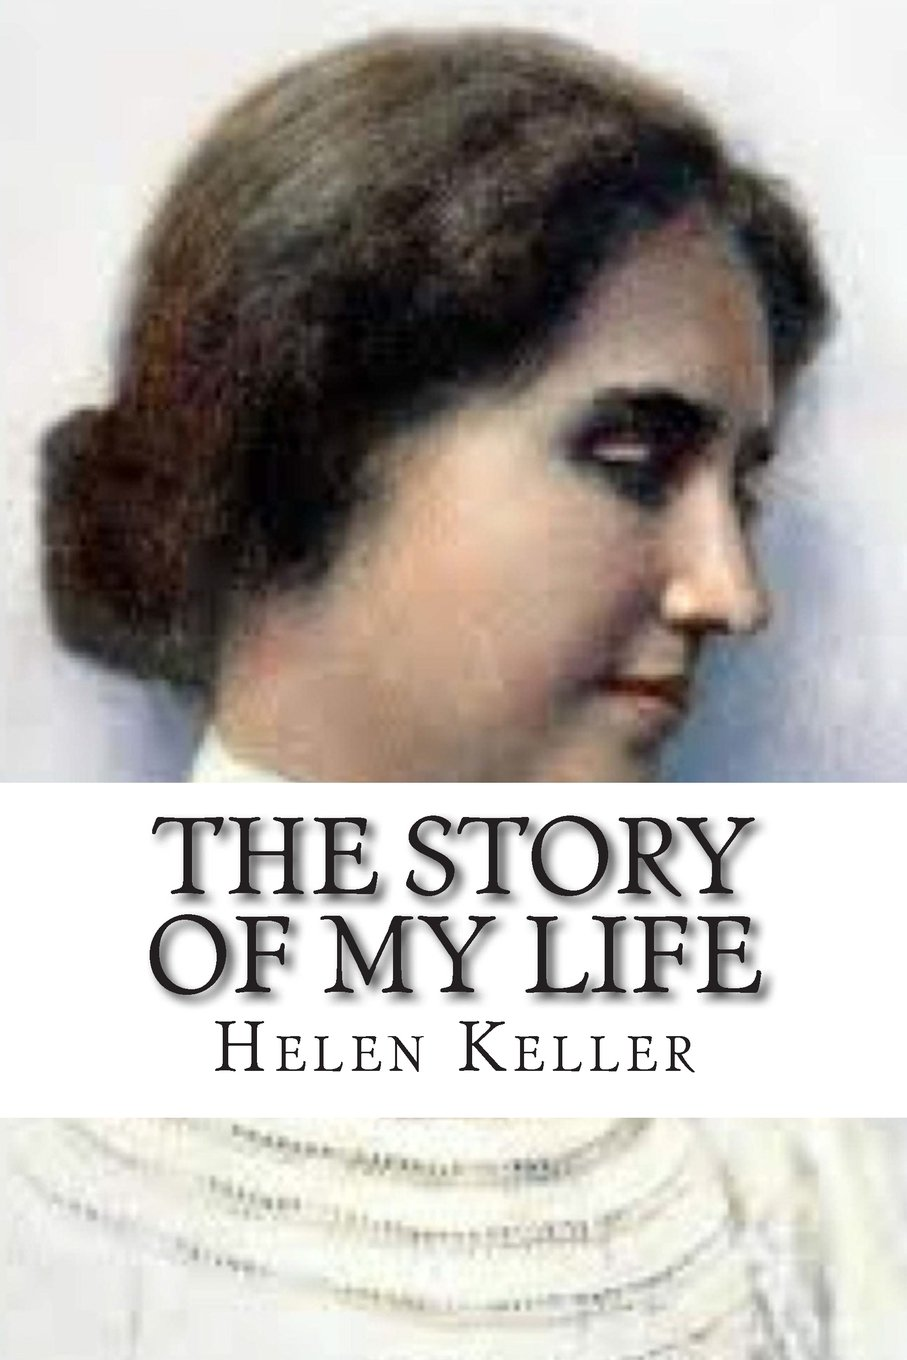 The Story of My Life, first published in 1903, is Helen Keller's autobiography detailing her early life.